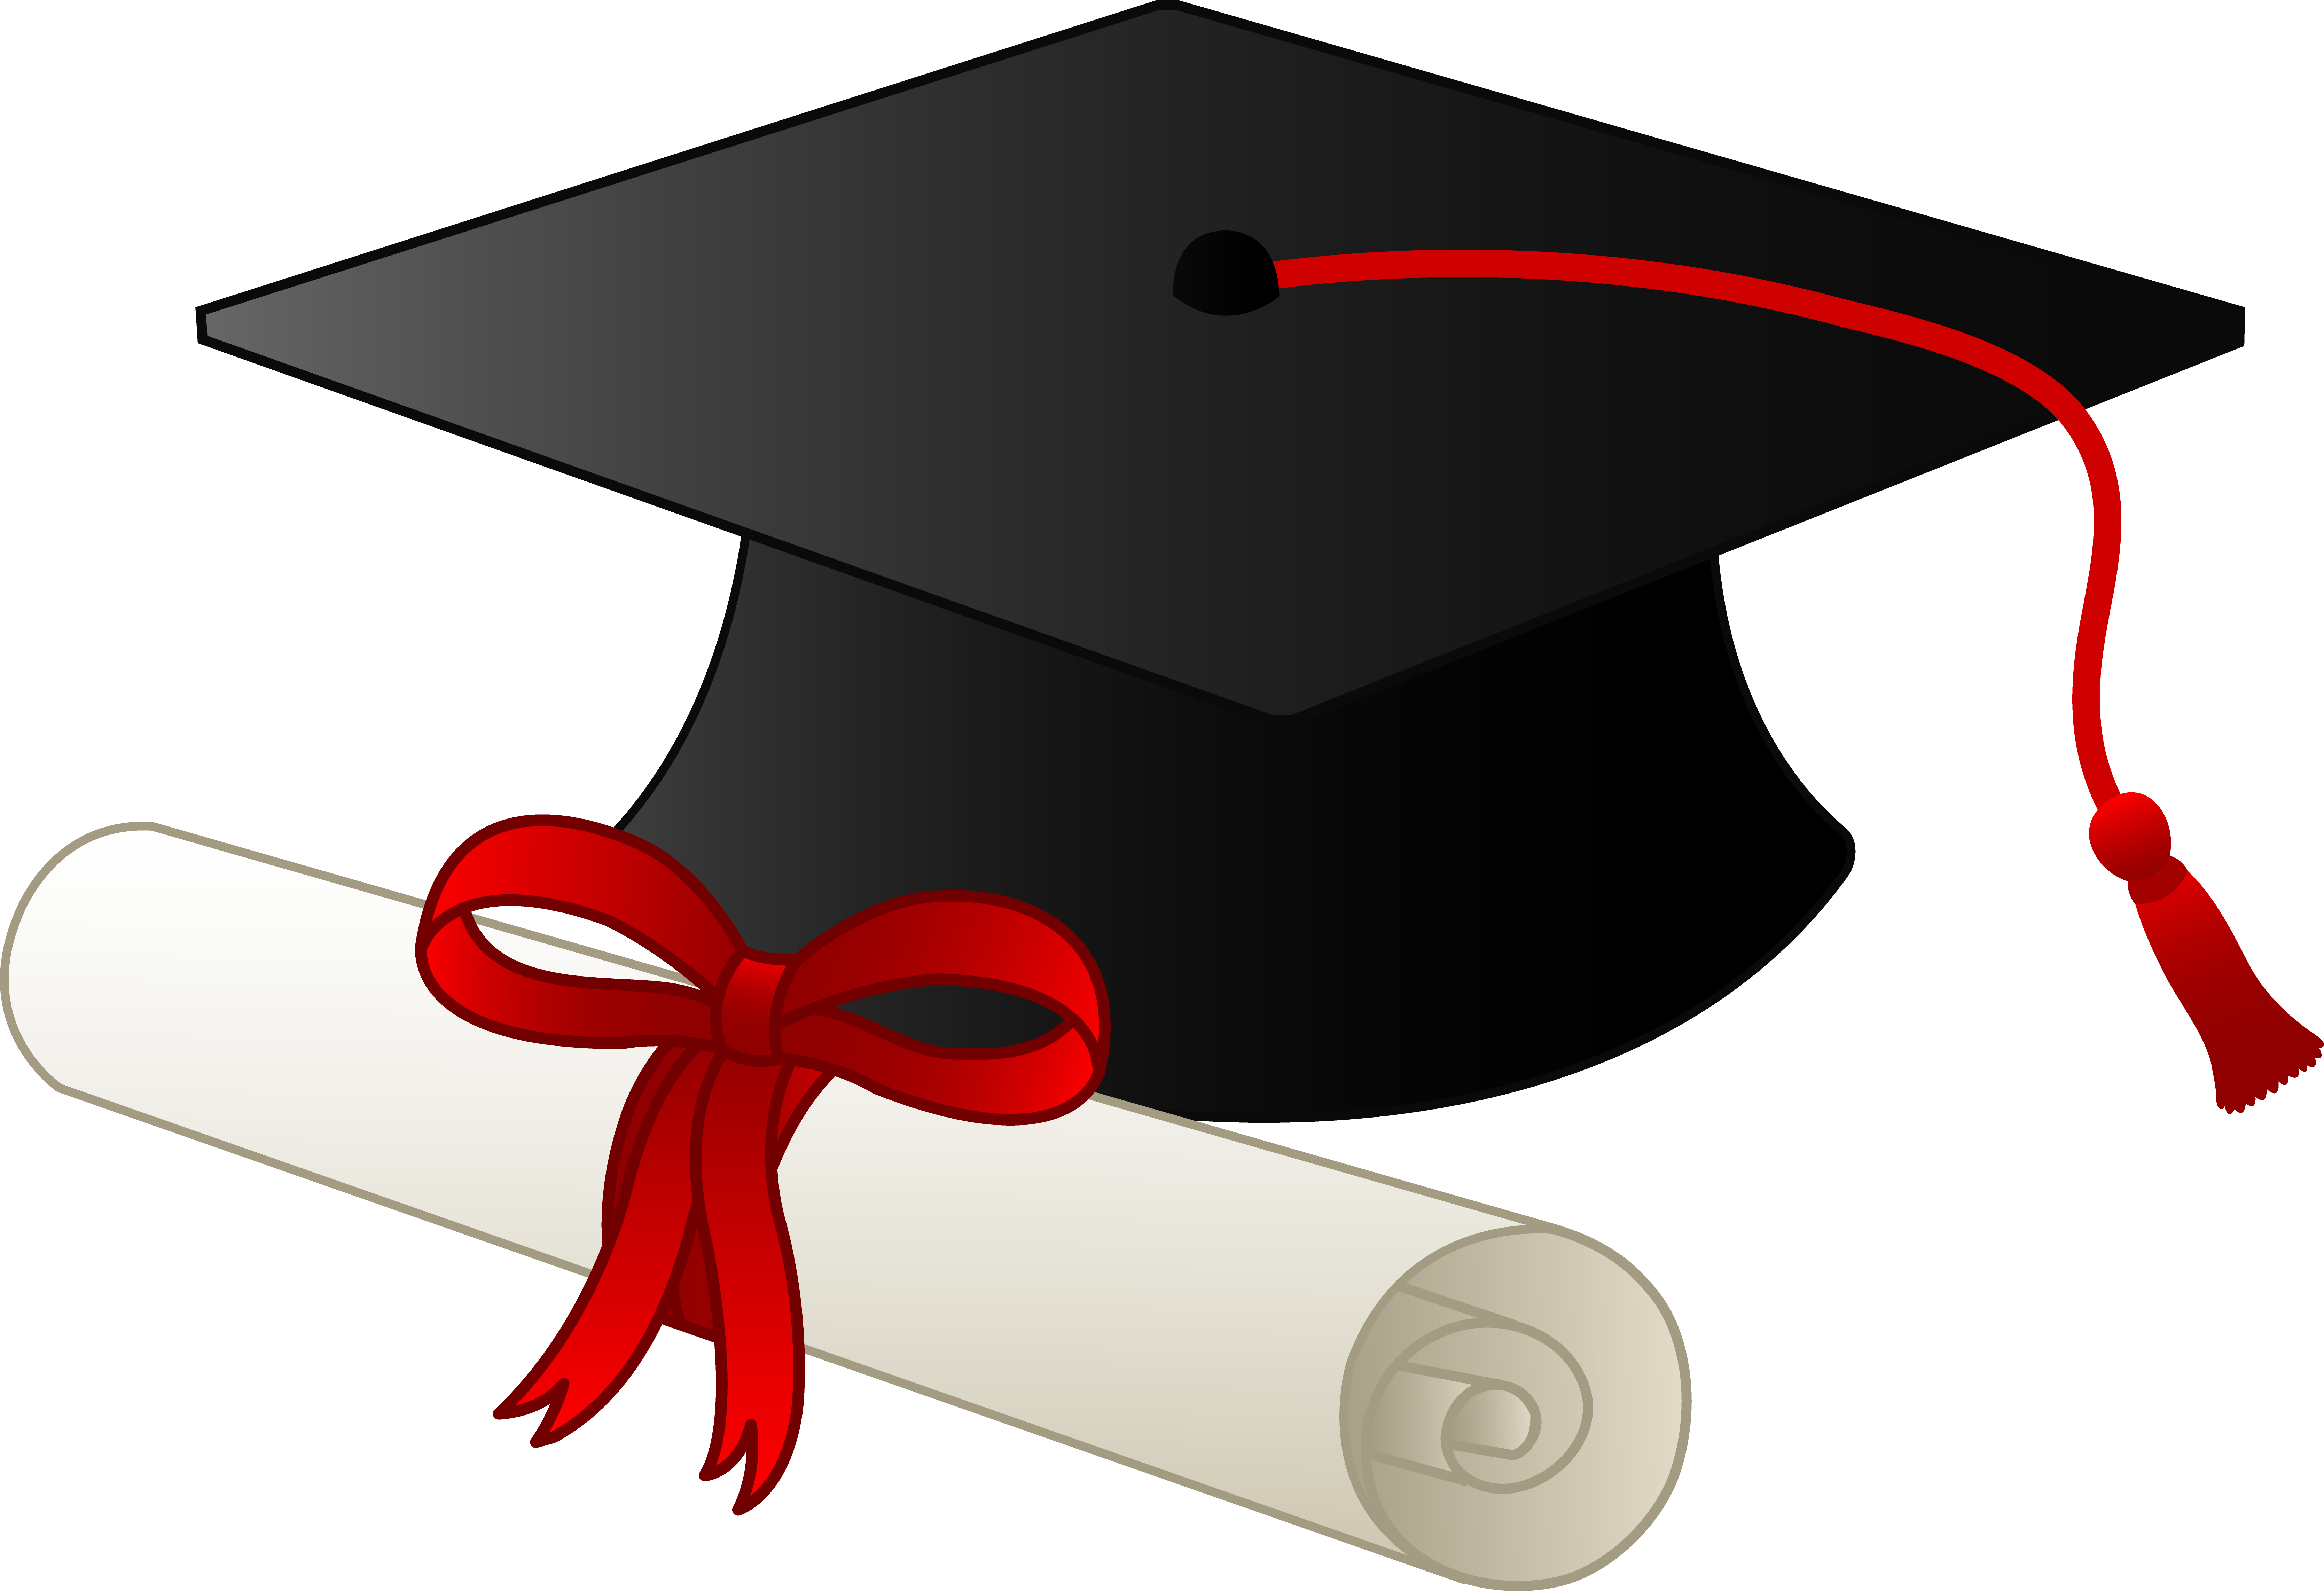 Graduation Cap And Diploma image - vector clip art online, royalty ...